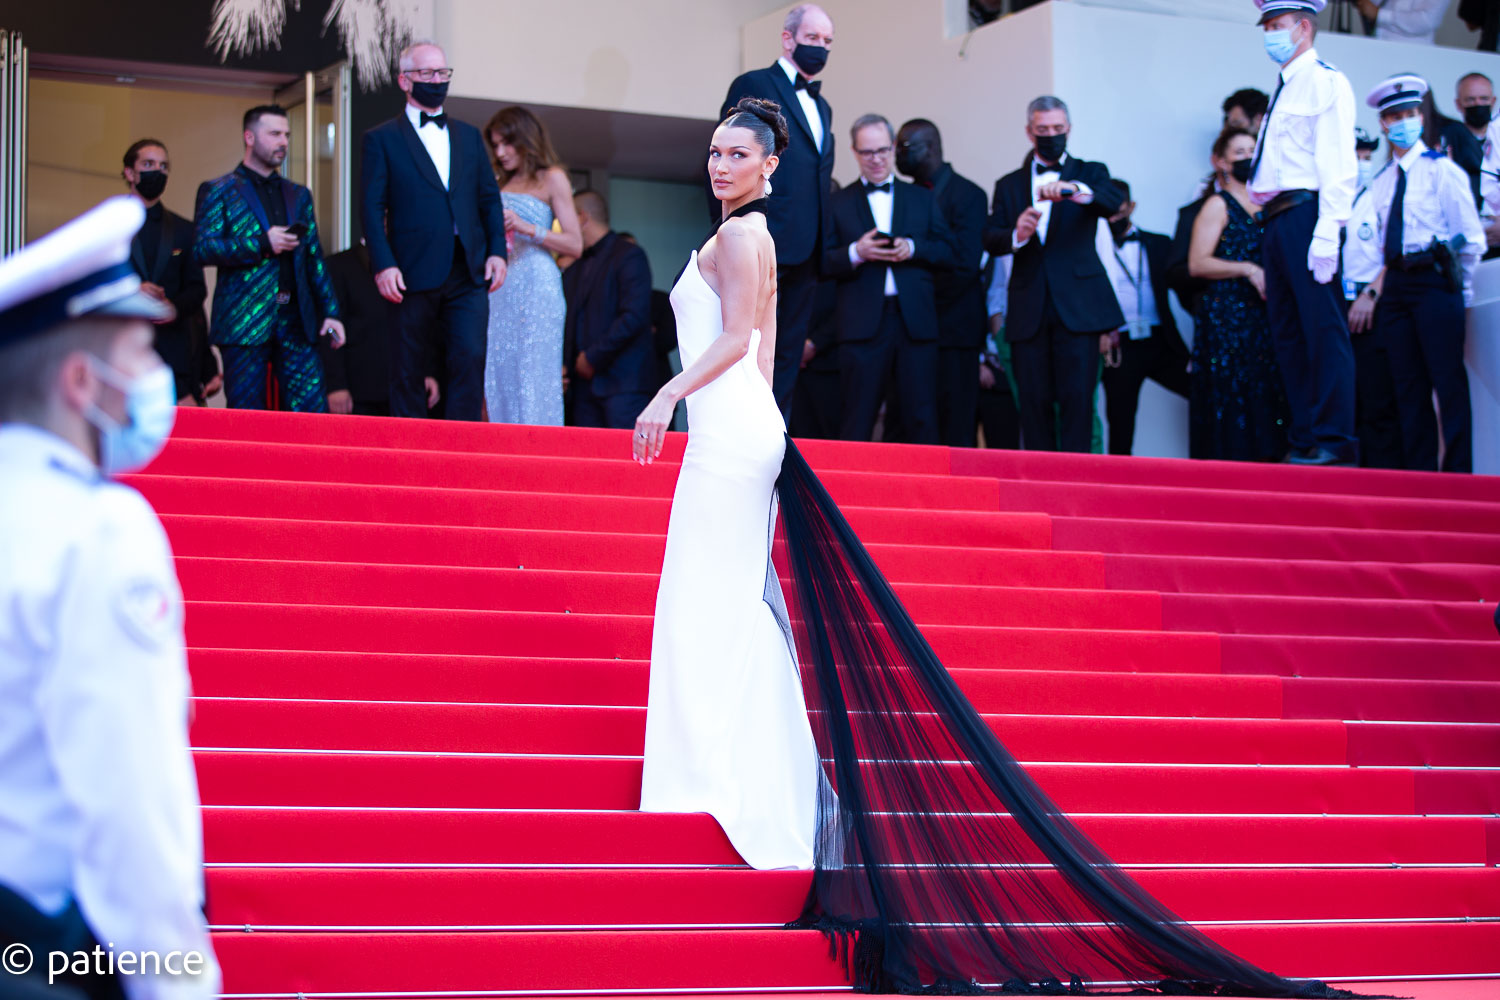 Supermodel Bella Hadid brought all the glamour to the 2021 Cannes Film Festival opening night red carpet Tuesday. Photo: Patience Eding/Another Concept via Florida National News.